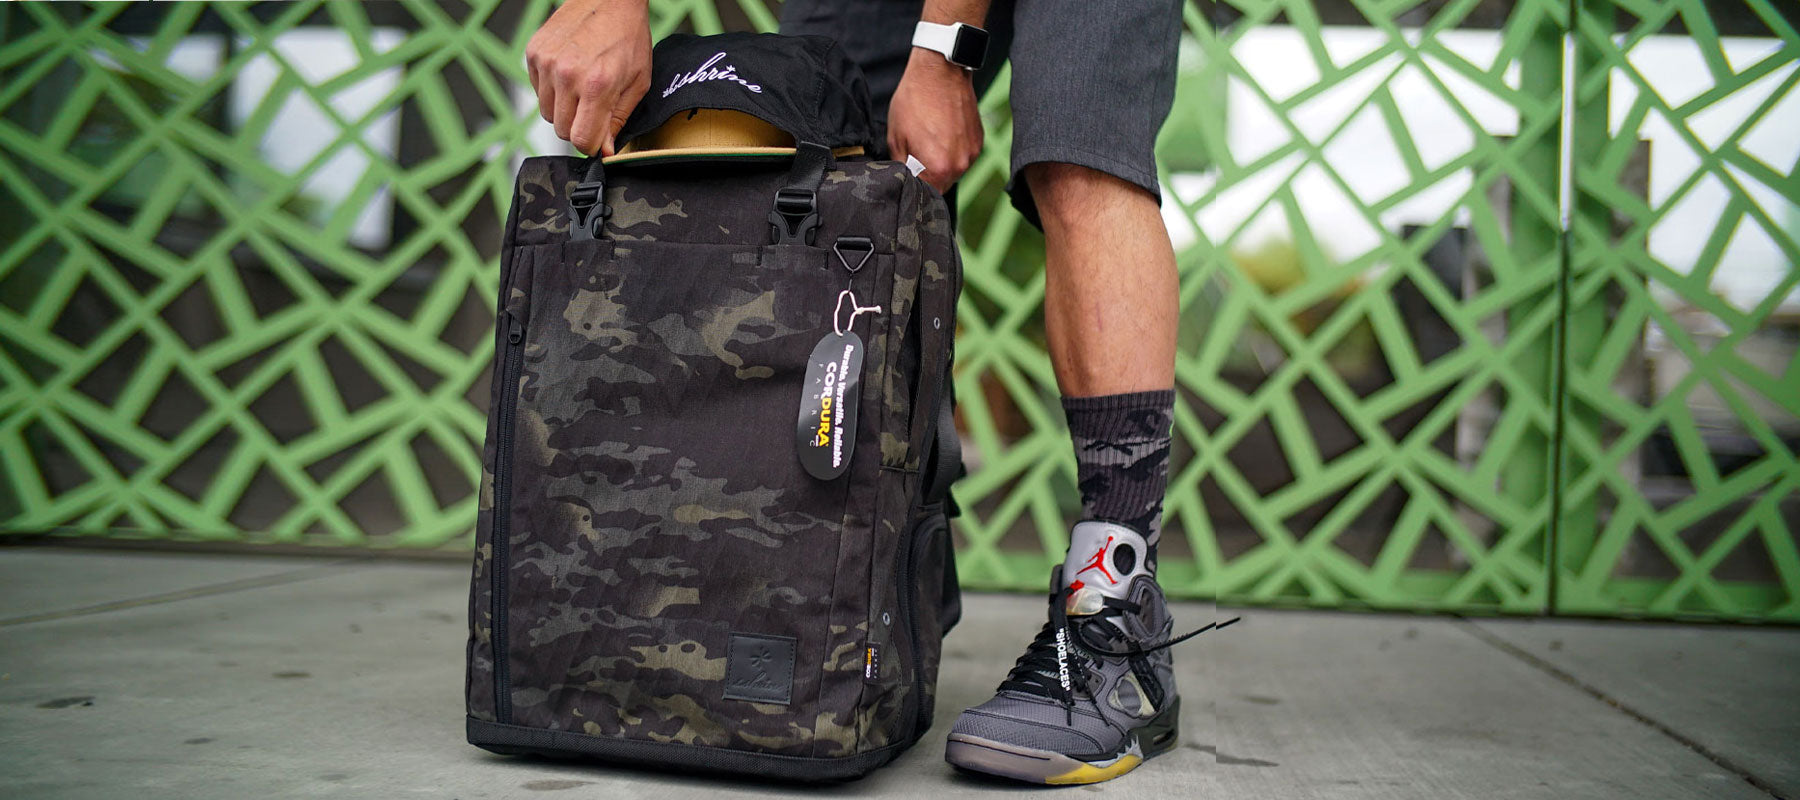 ADVprojktz: X-pac™ X50 MULTICAM® CORDURA® Weekender Backpack